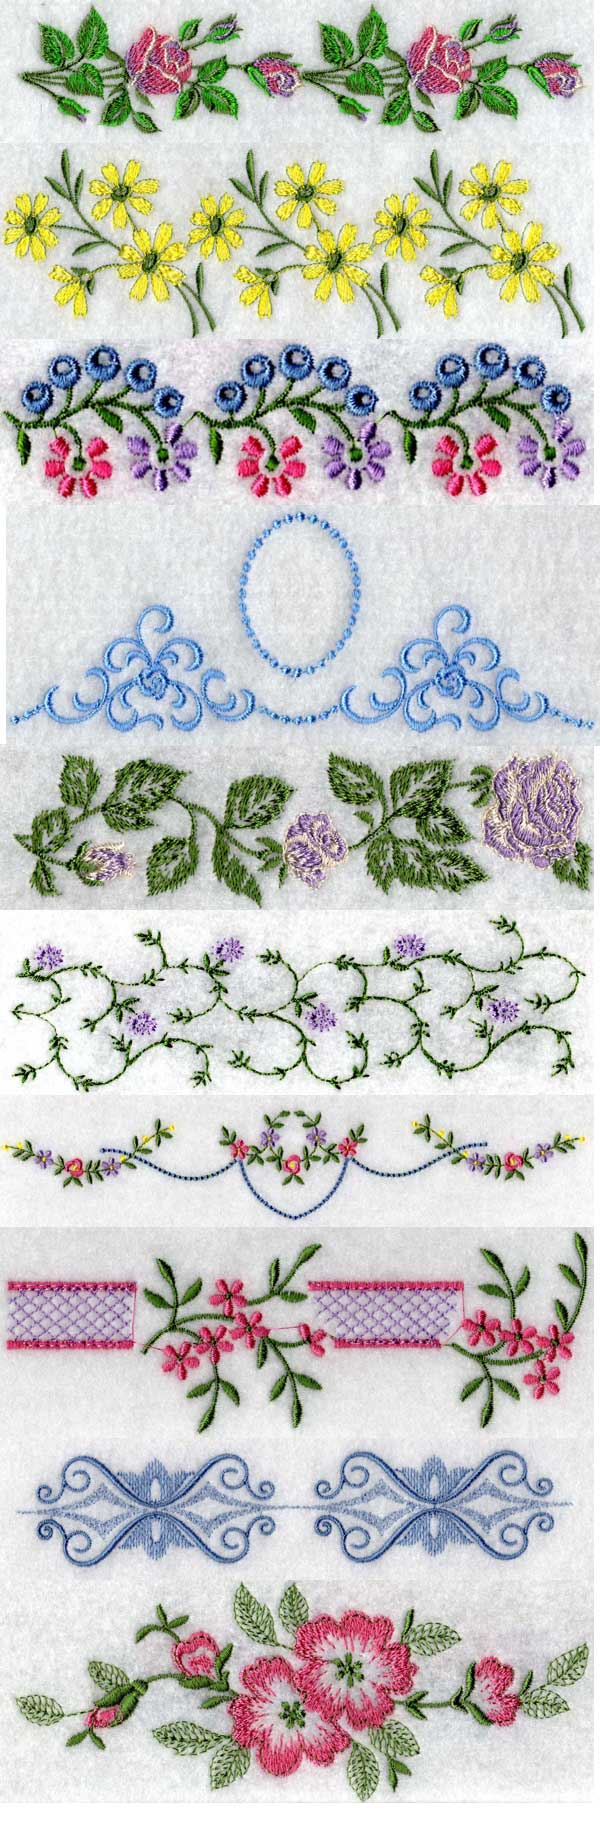 Linens 3 Embroidery Machine Design Details